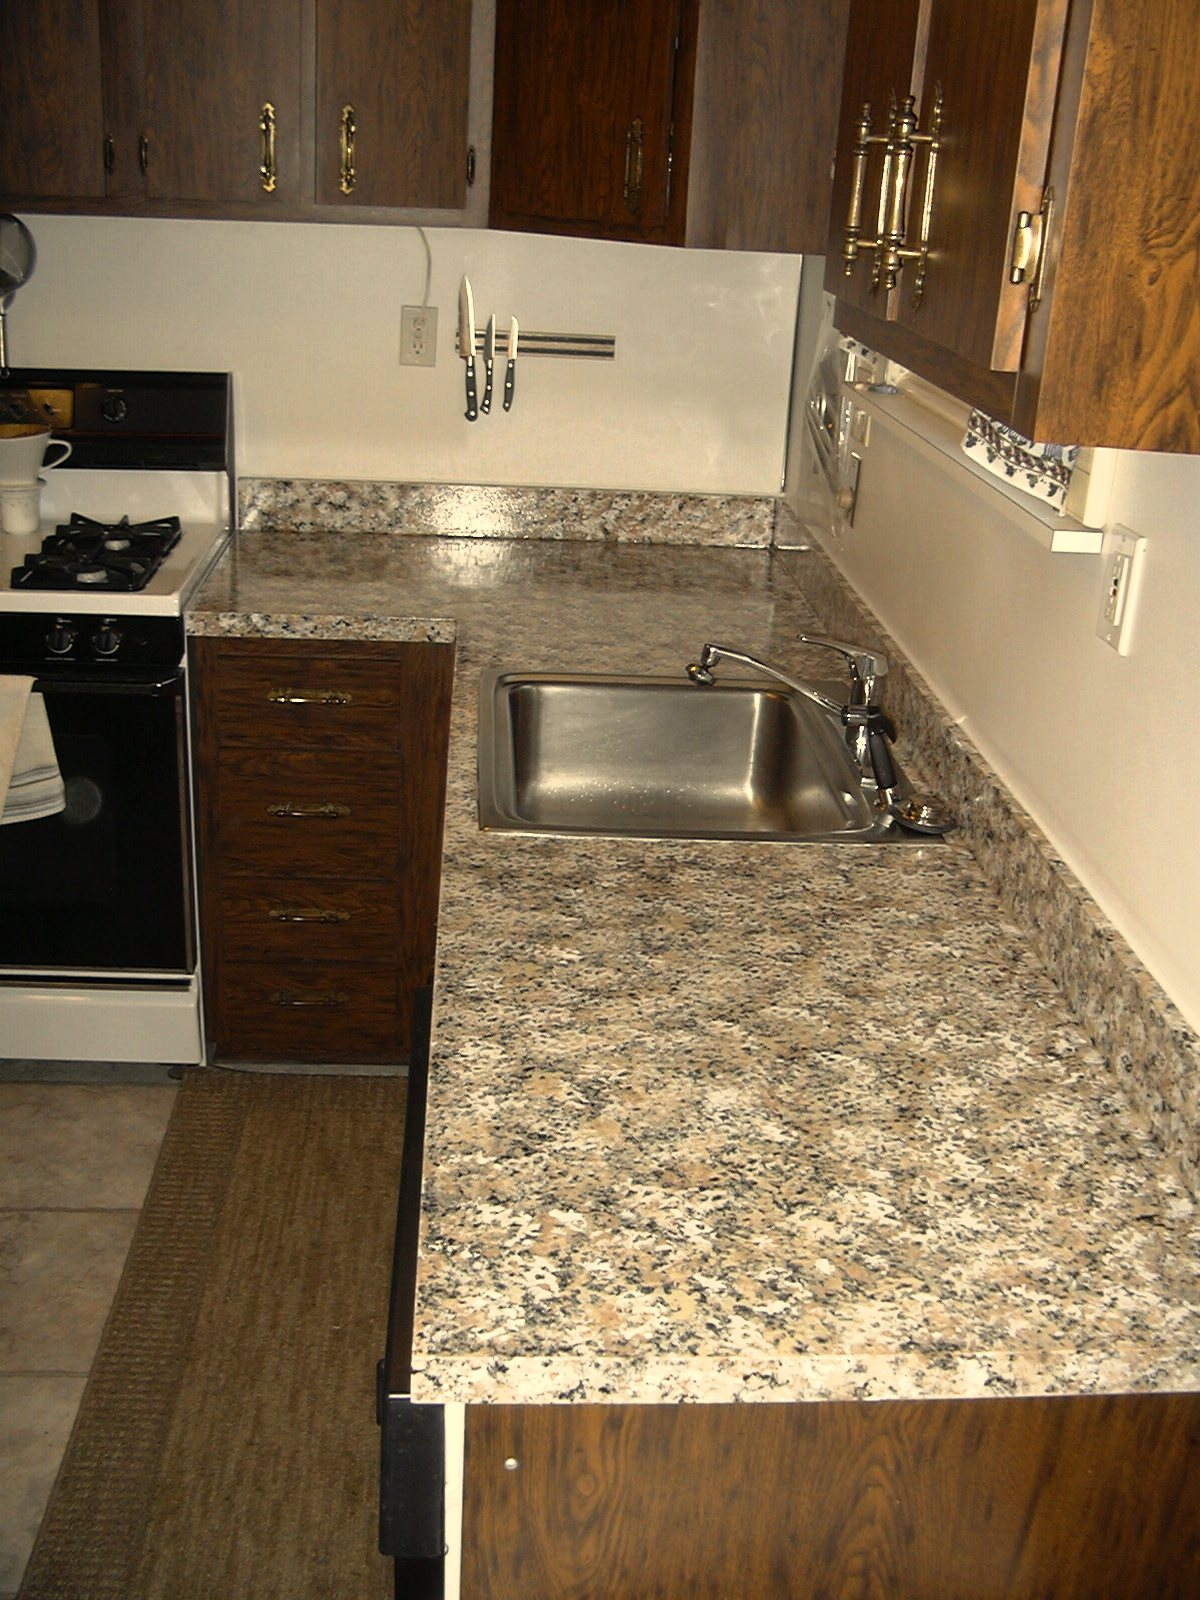 Great The Top Polyurethane Coats Gave The Countertop A Highly Glossy Finish.